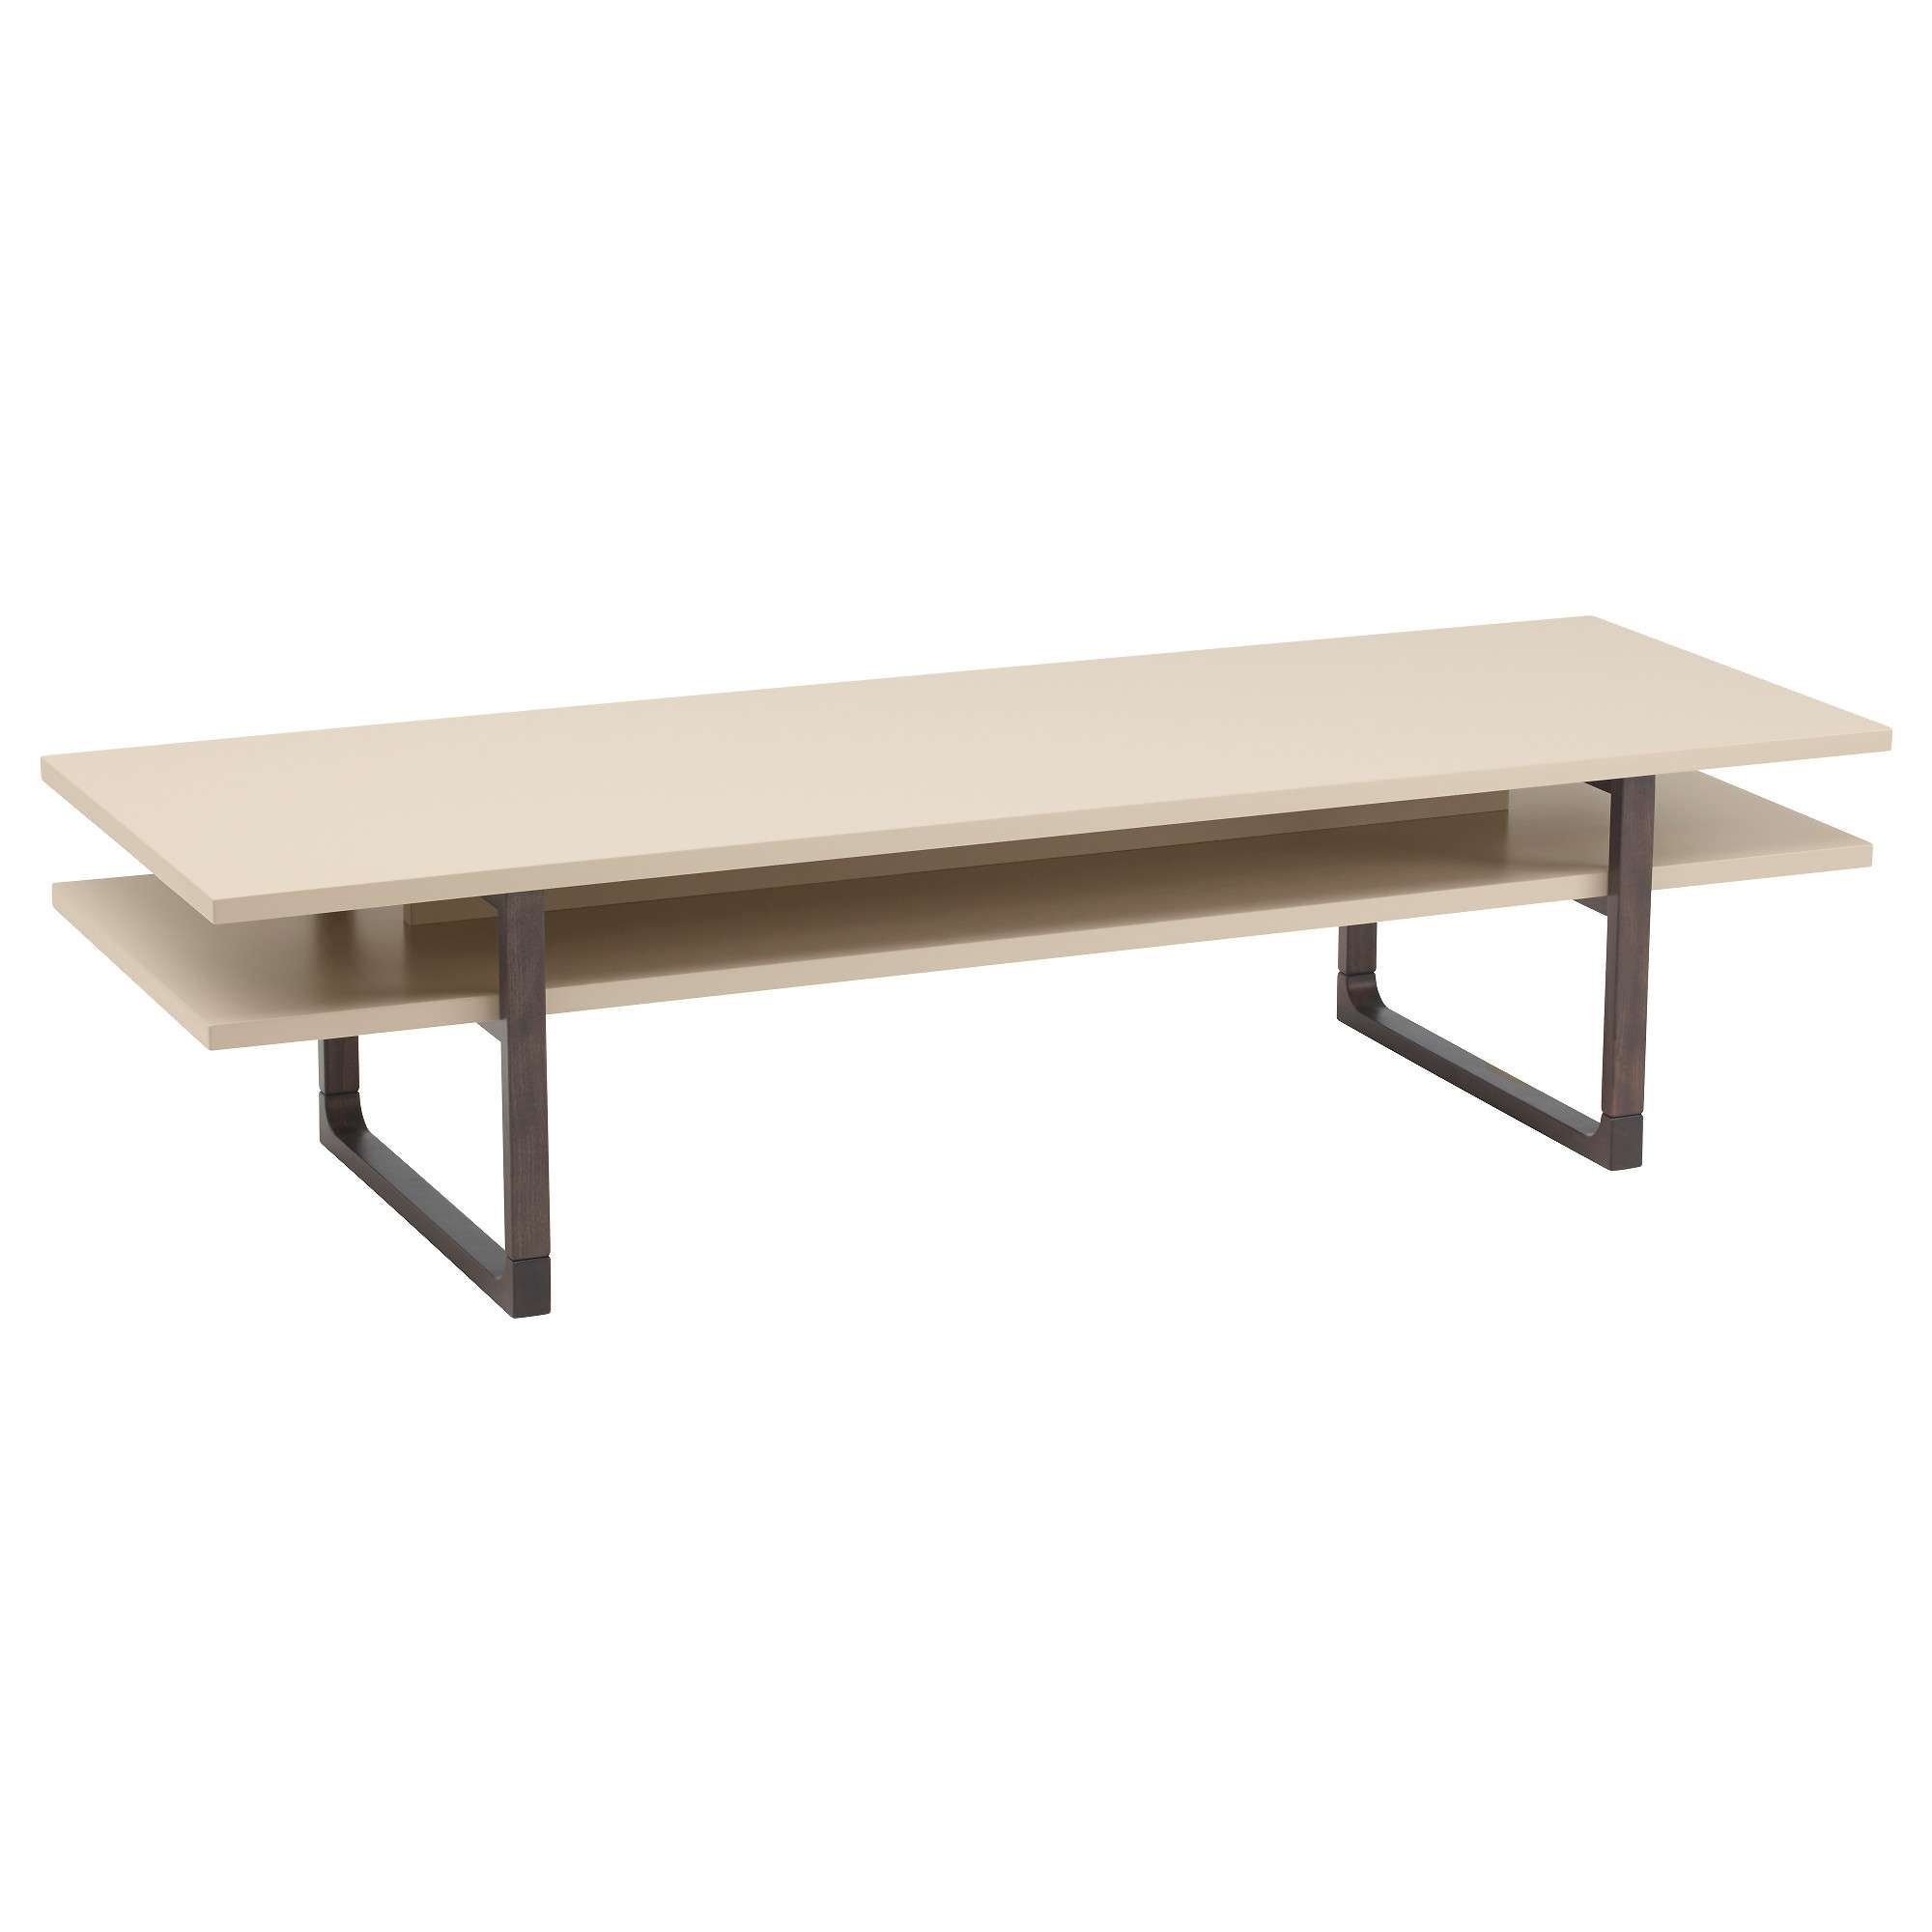 2018 Beige Coffee Tables Throughout Rissna Coffee Table Beige 160X55 Cm – Ikea (View 2 of 20)